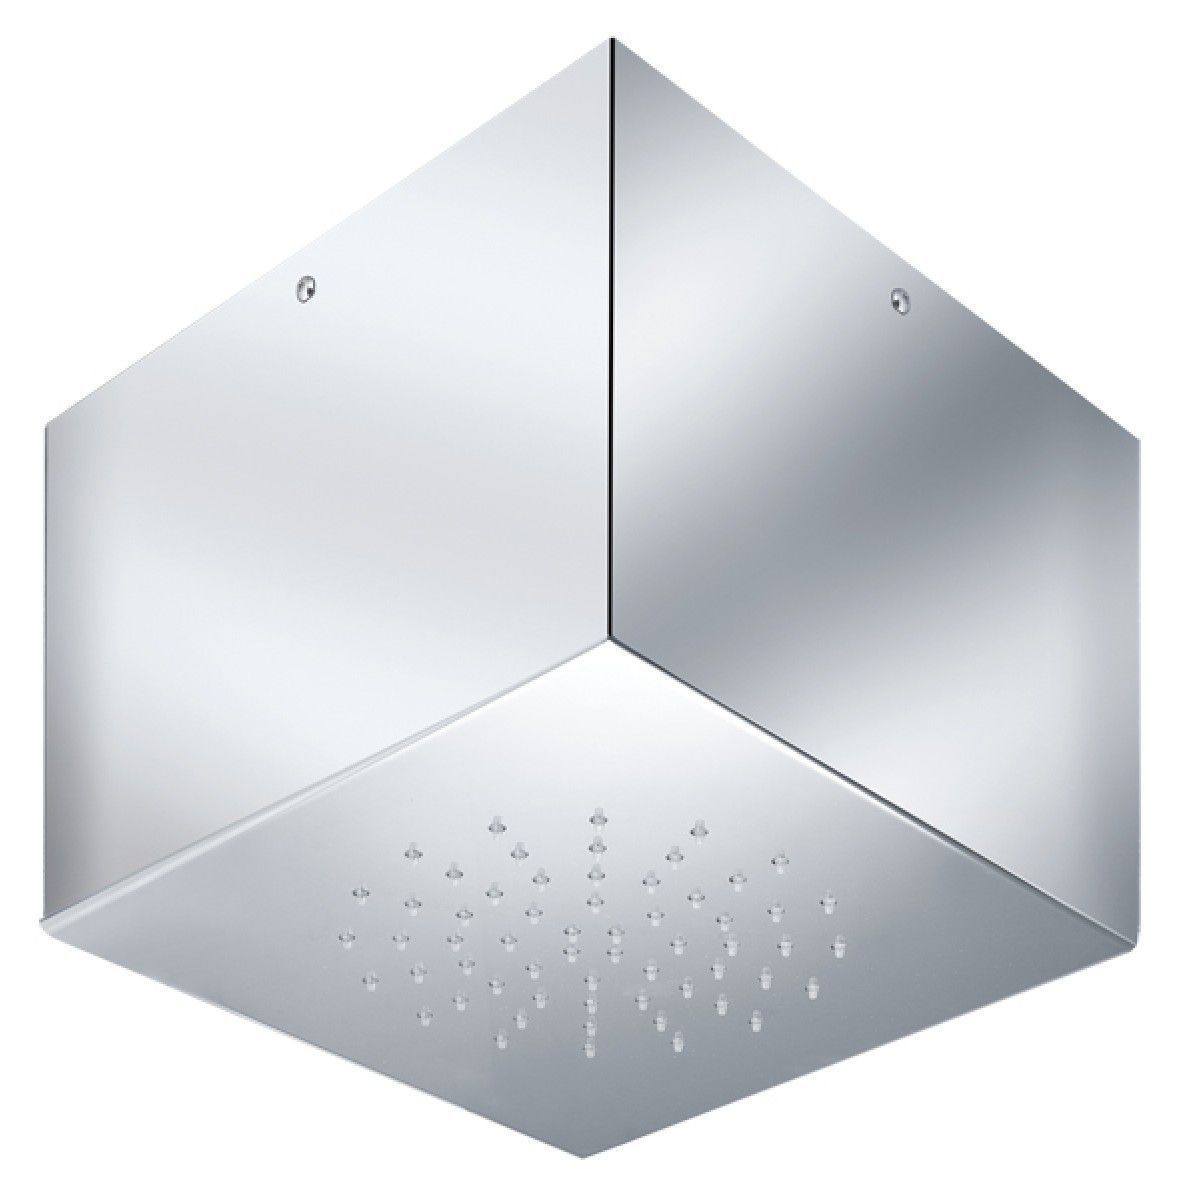 Ceiling mounted shower head square kube sofmog142000